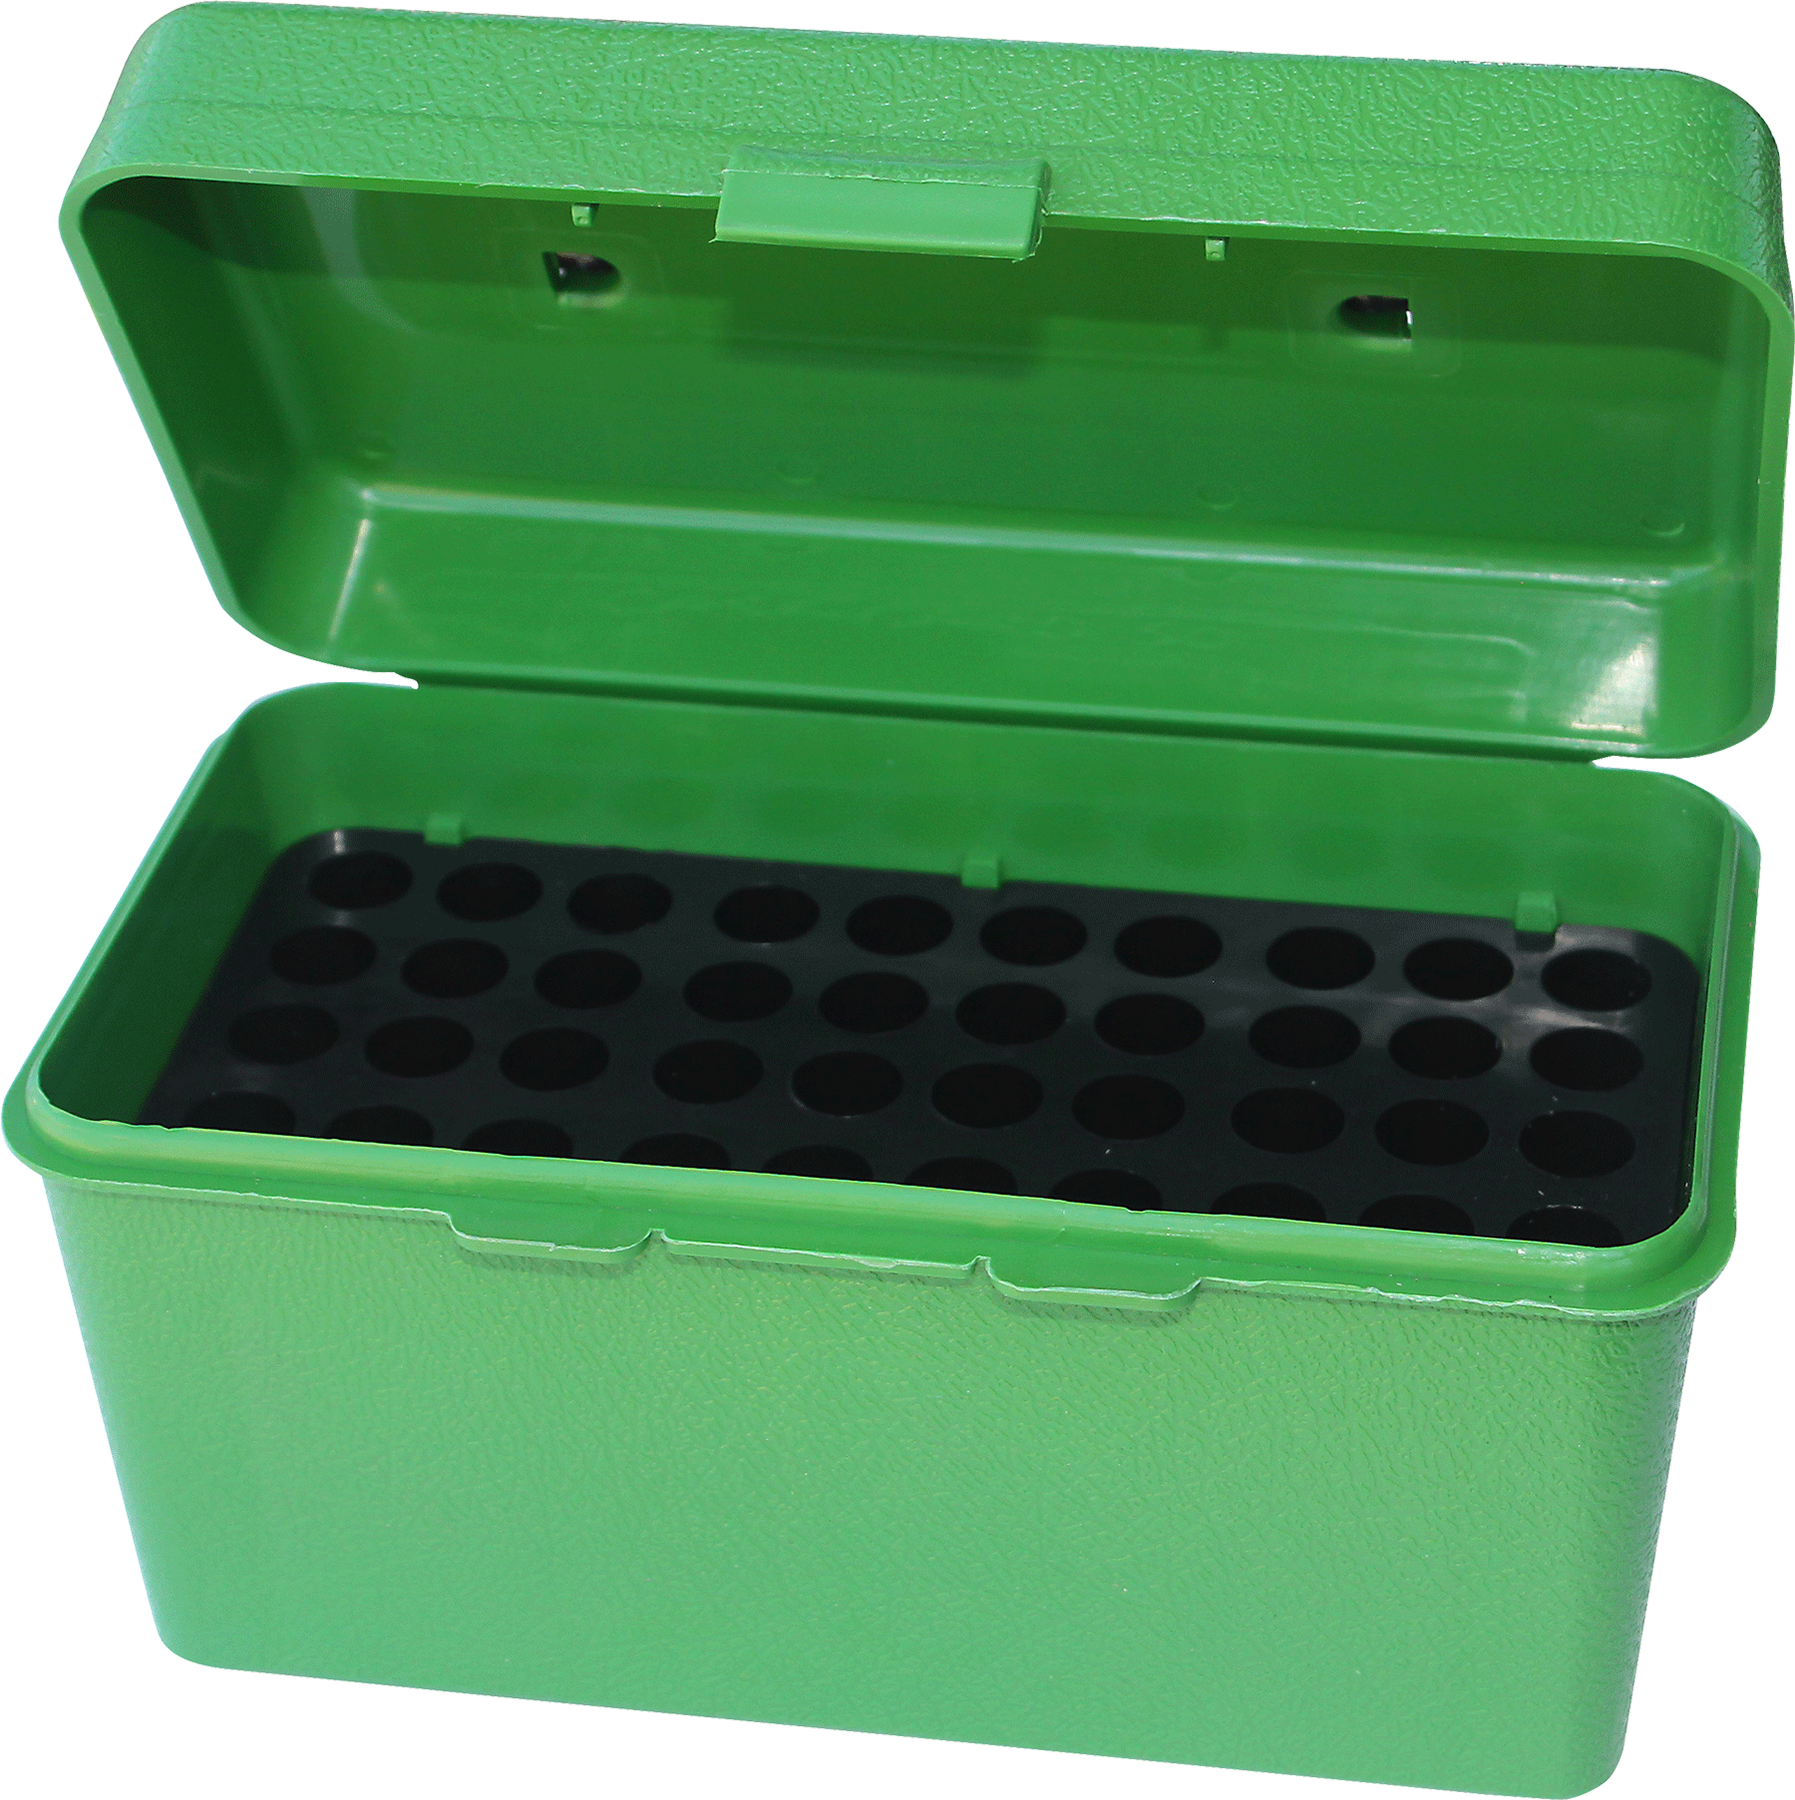 MTM Deluxe H-50 Handled Small Rifle Ammo Box 3.45